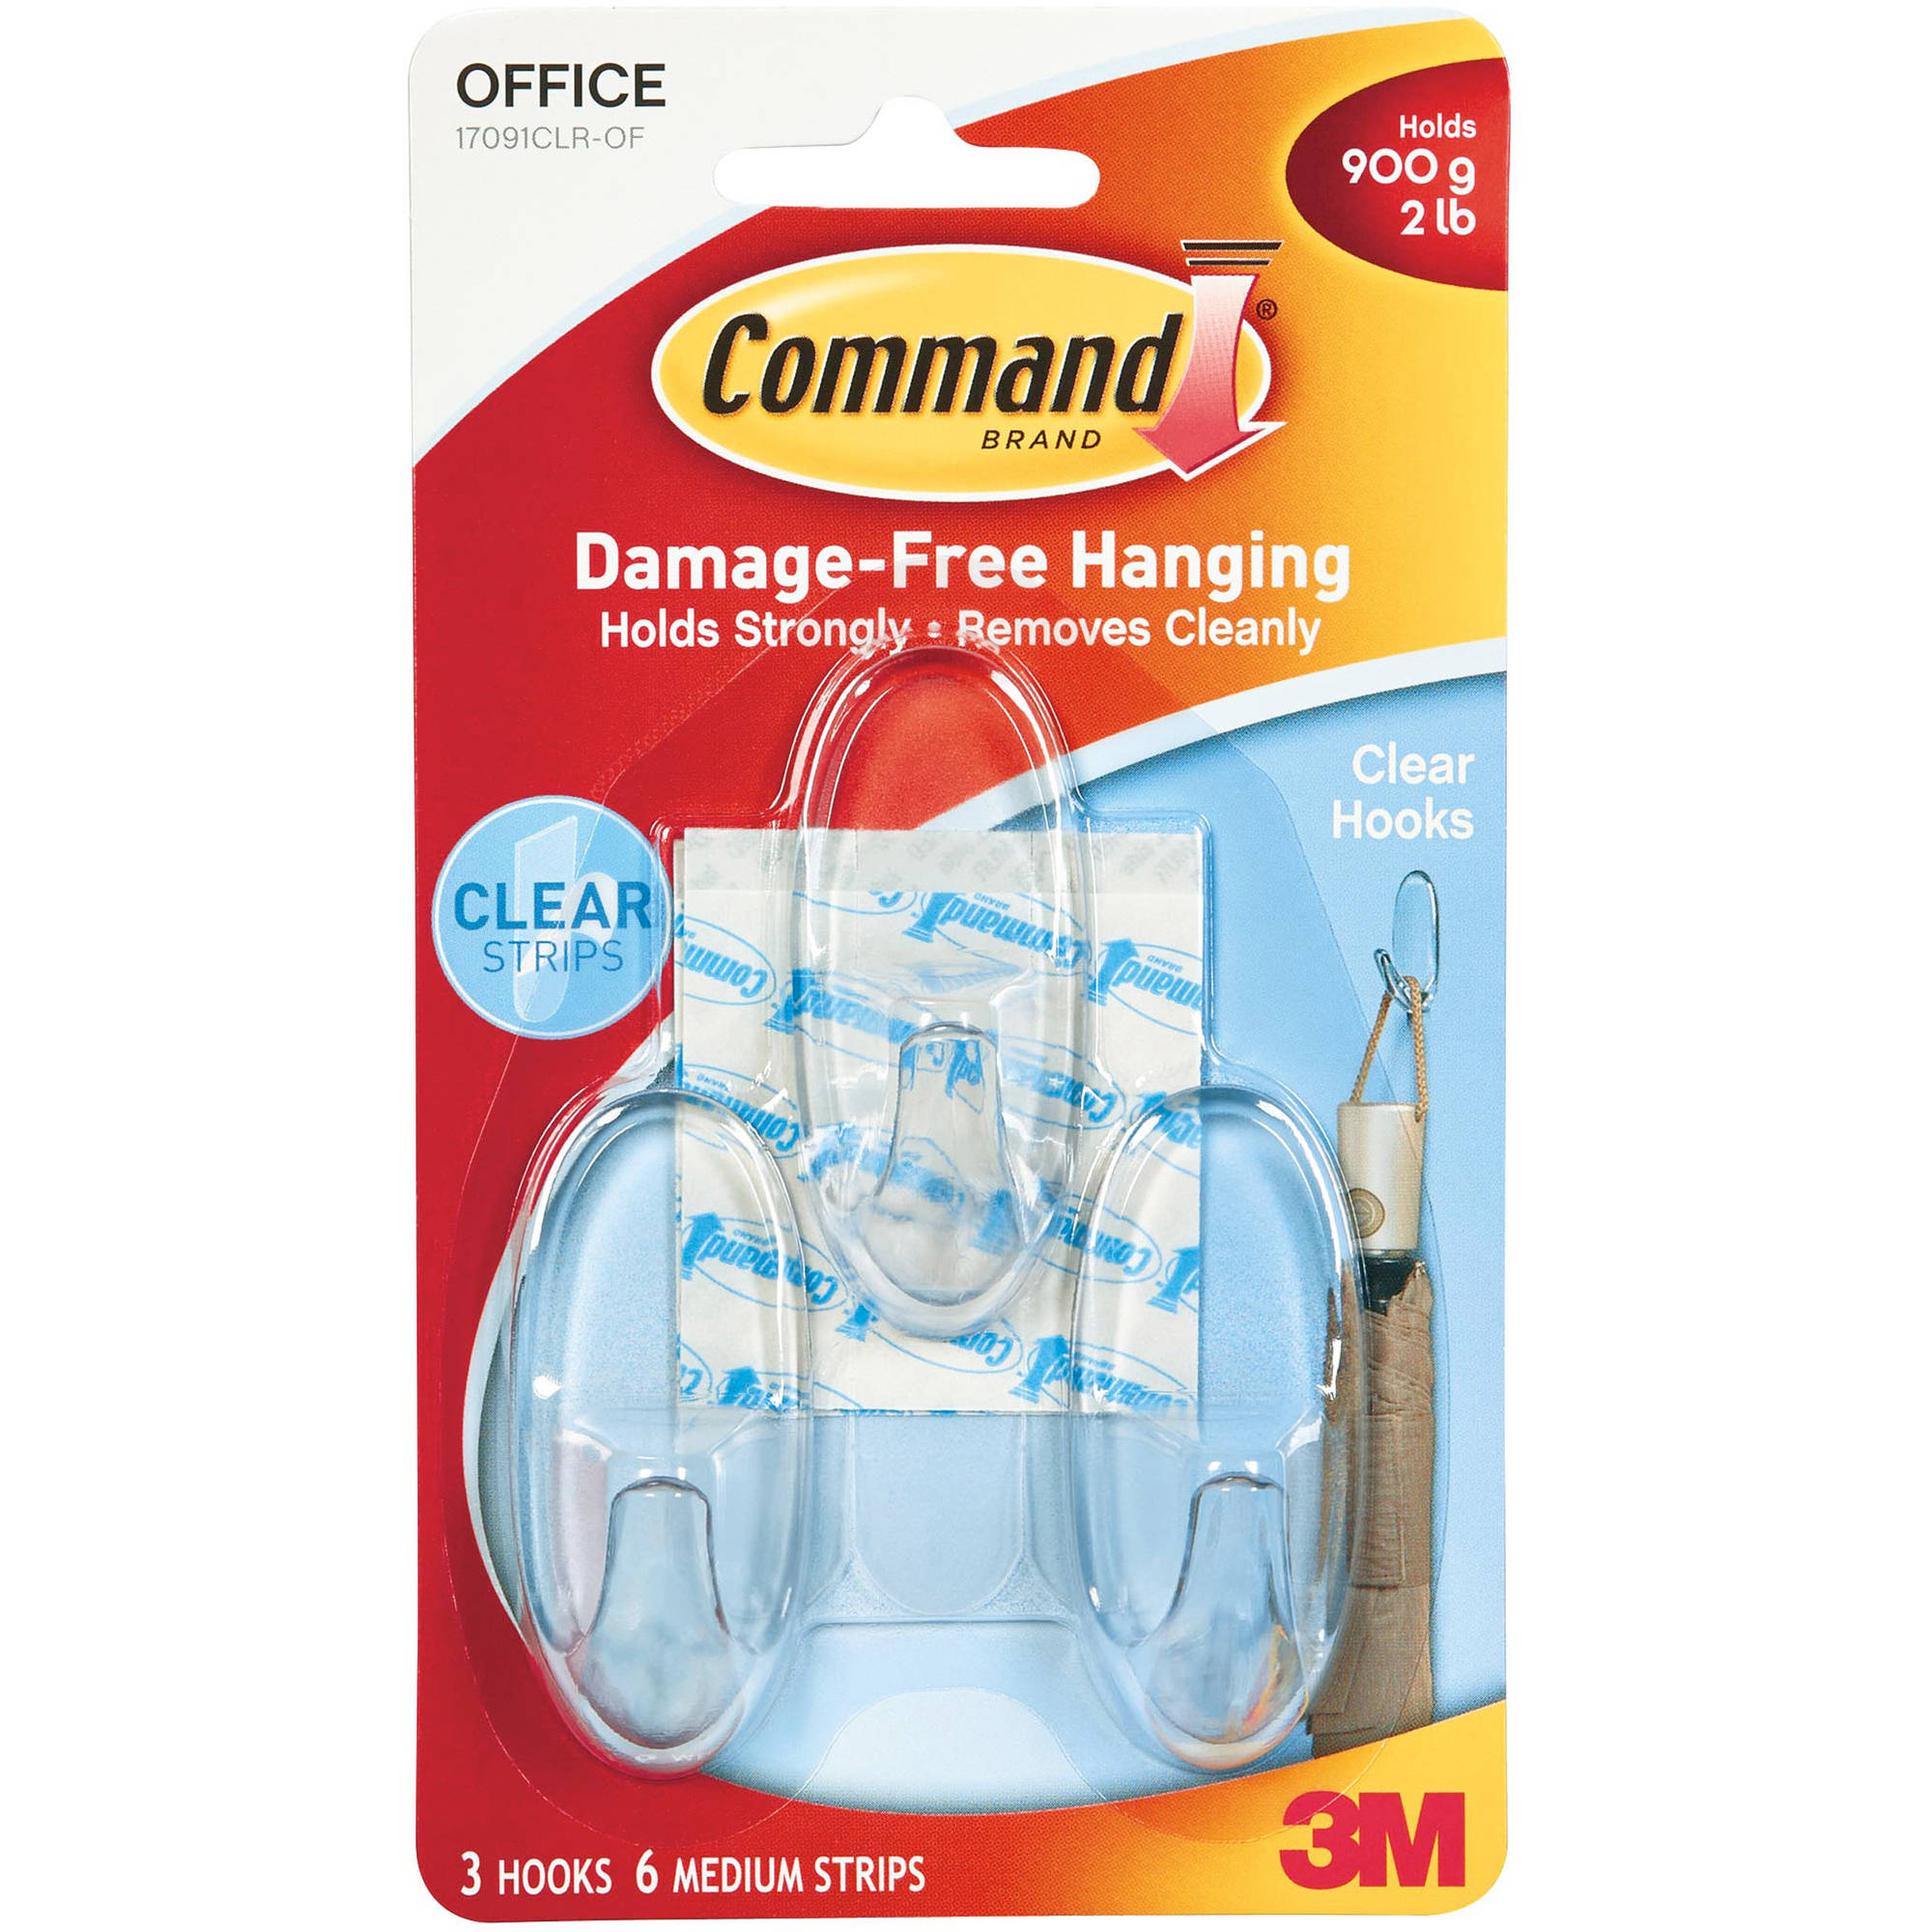 Command Clear Medium Hooks, 3 Hooks, 6 Strips, 17091CLR-OF